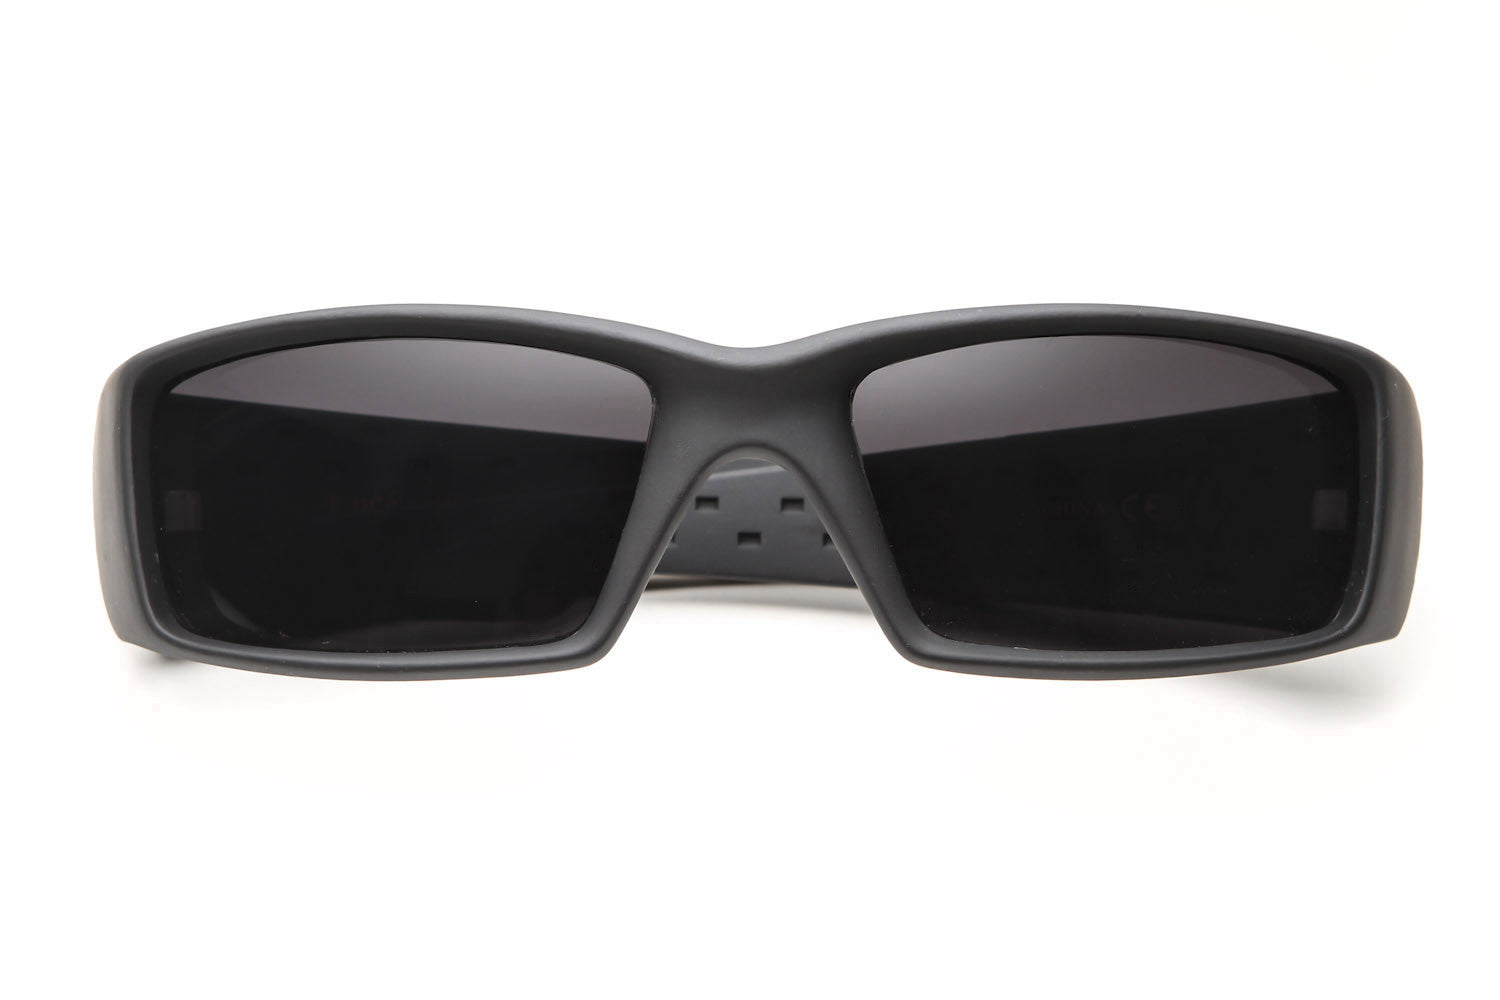 Gangster LOCS Cholo Street Style Sunglasses